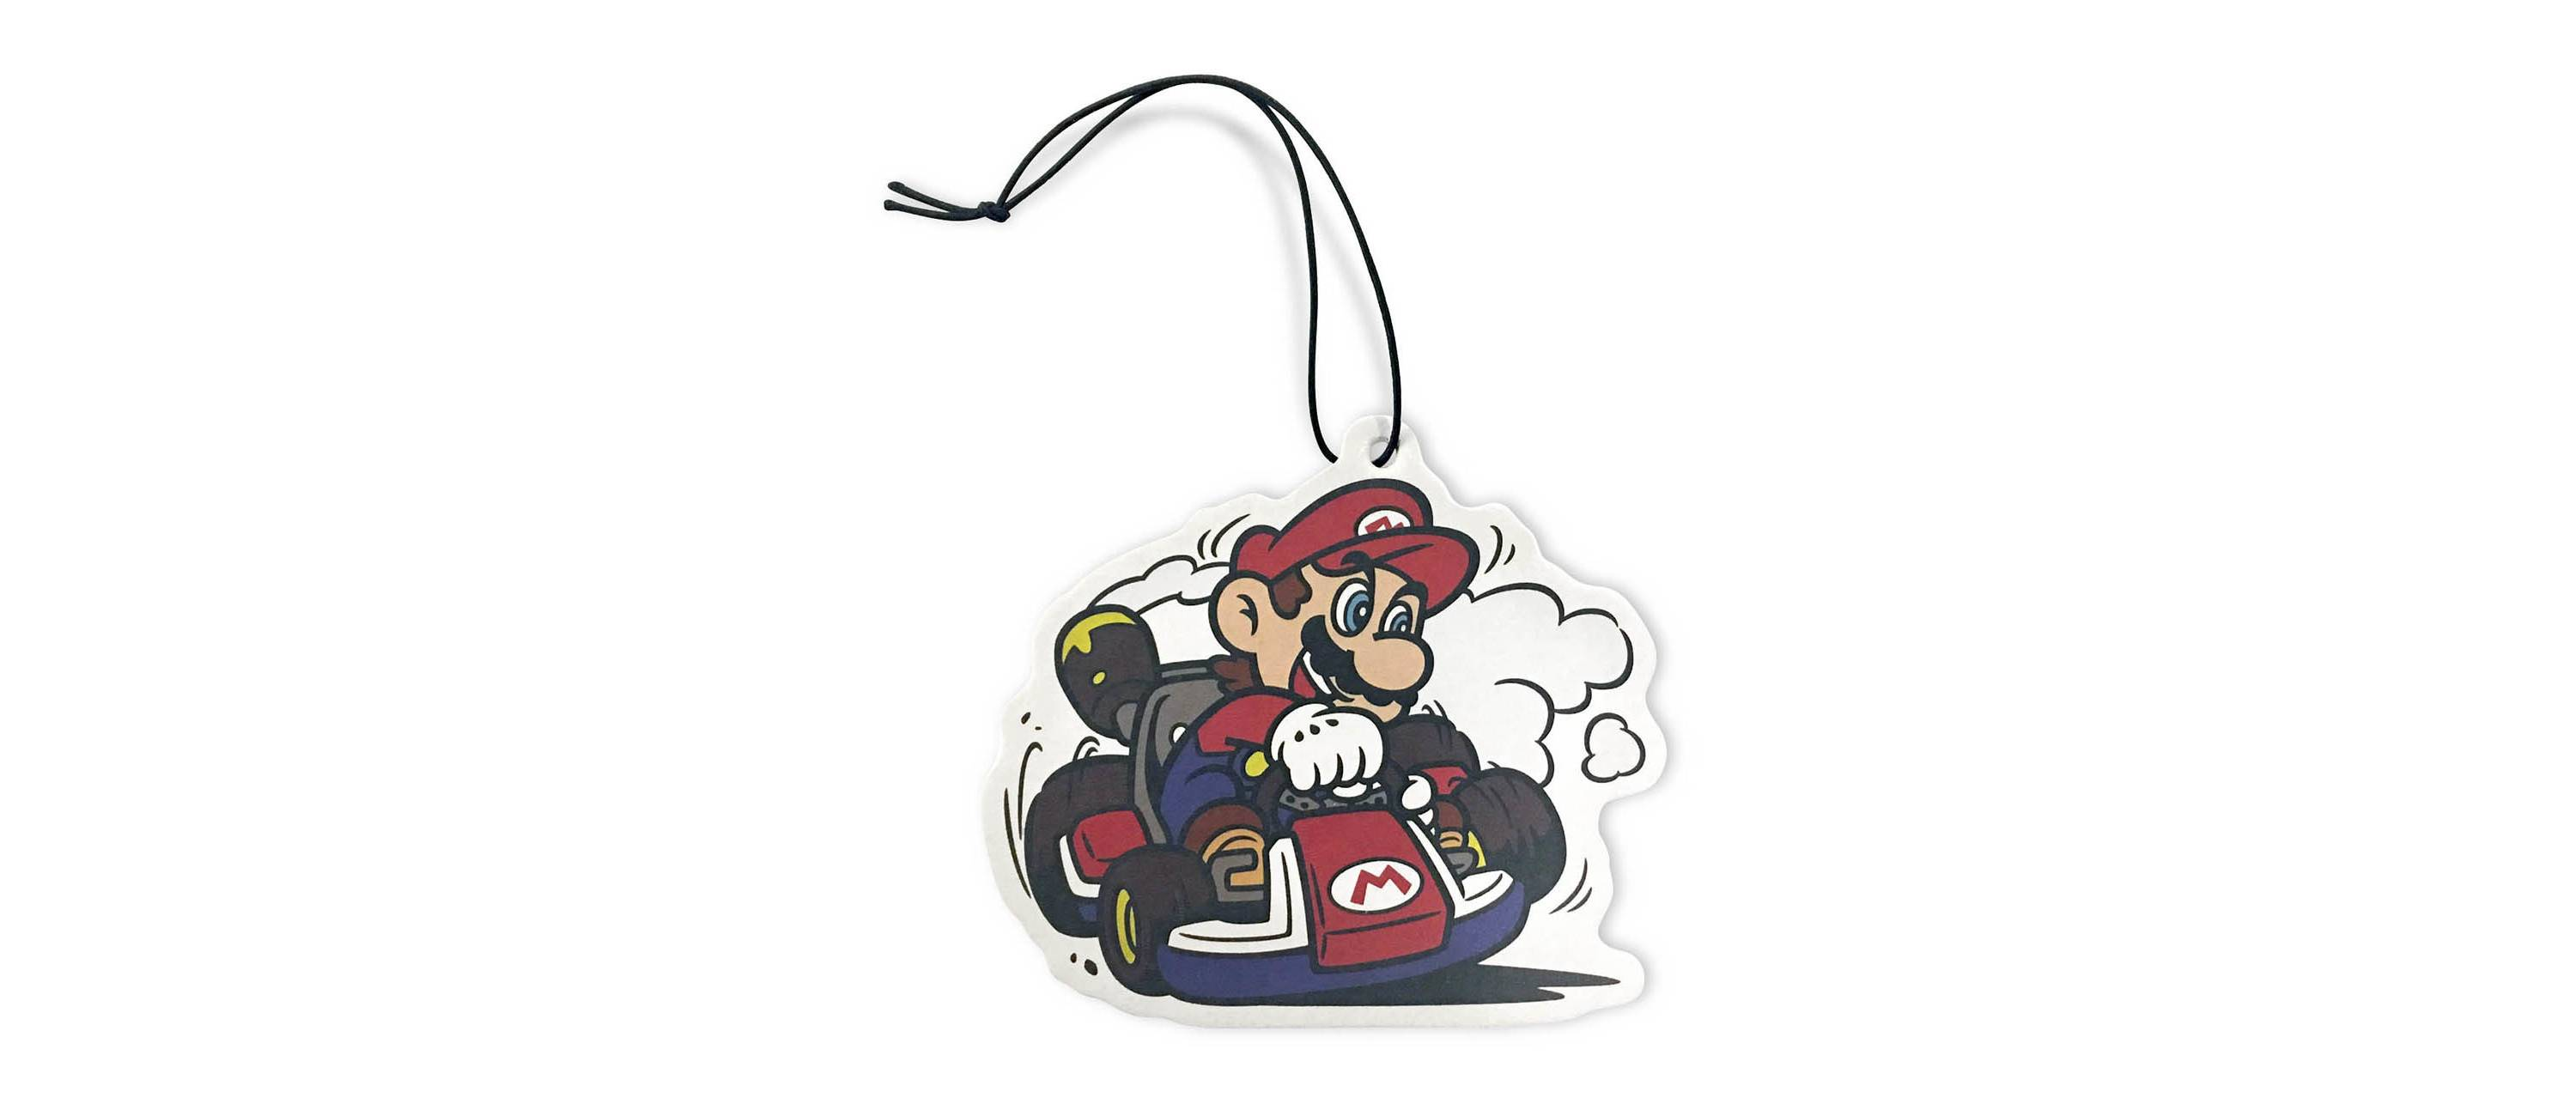 Mario kart 8 for sale - Air Freshener 3